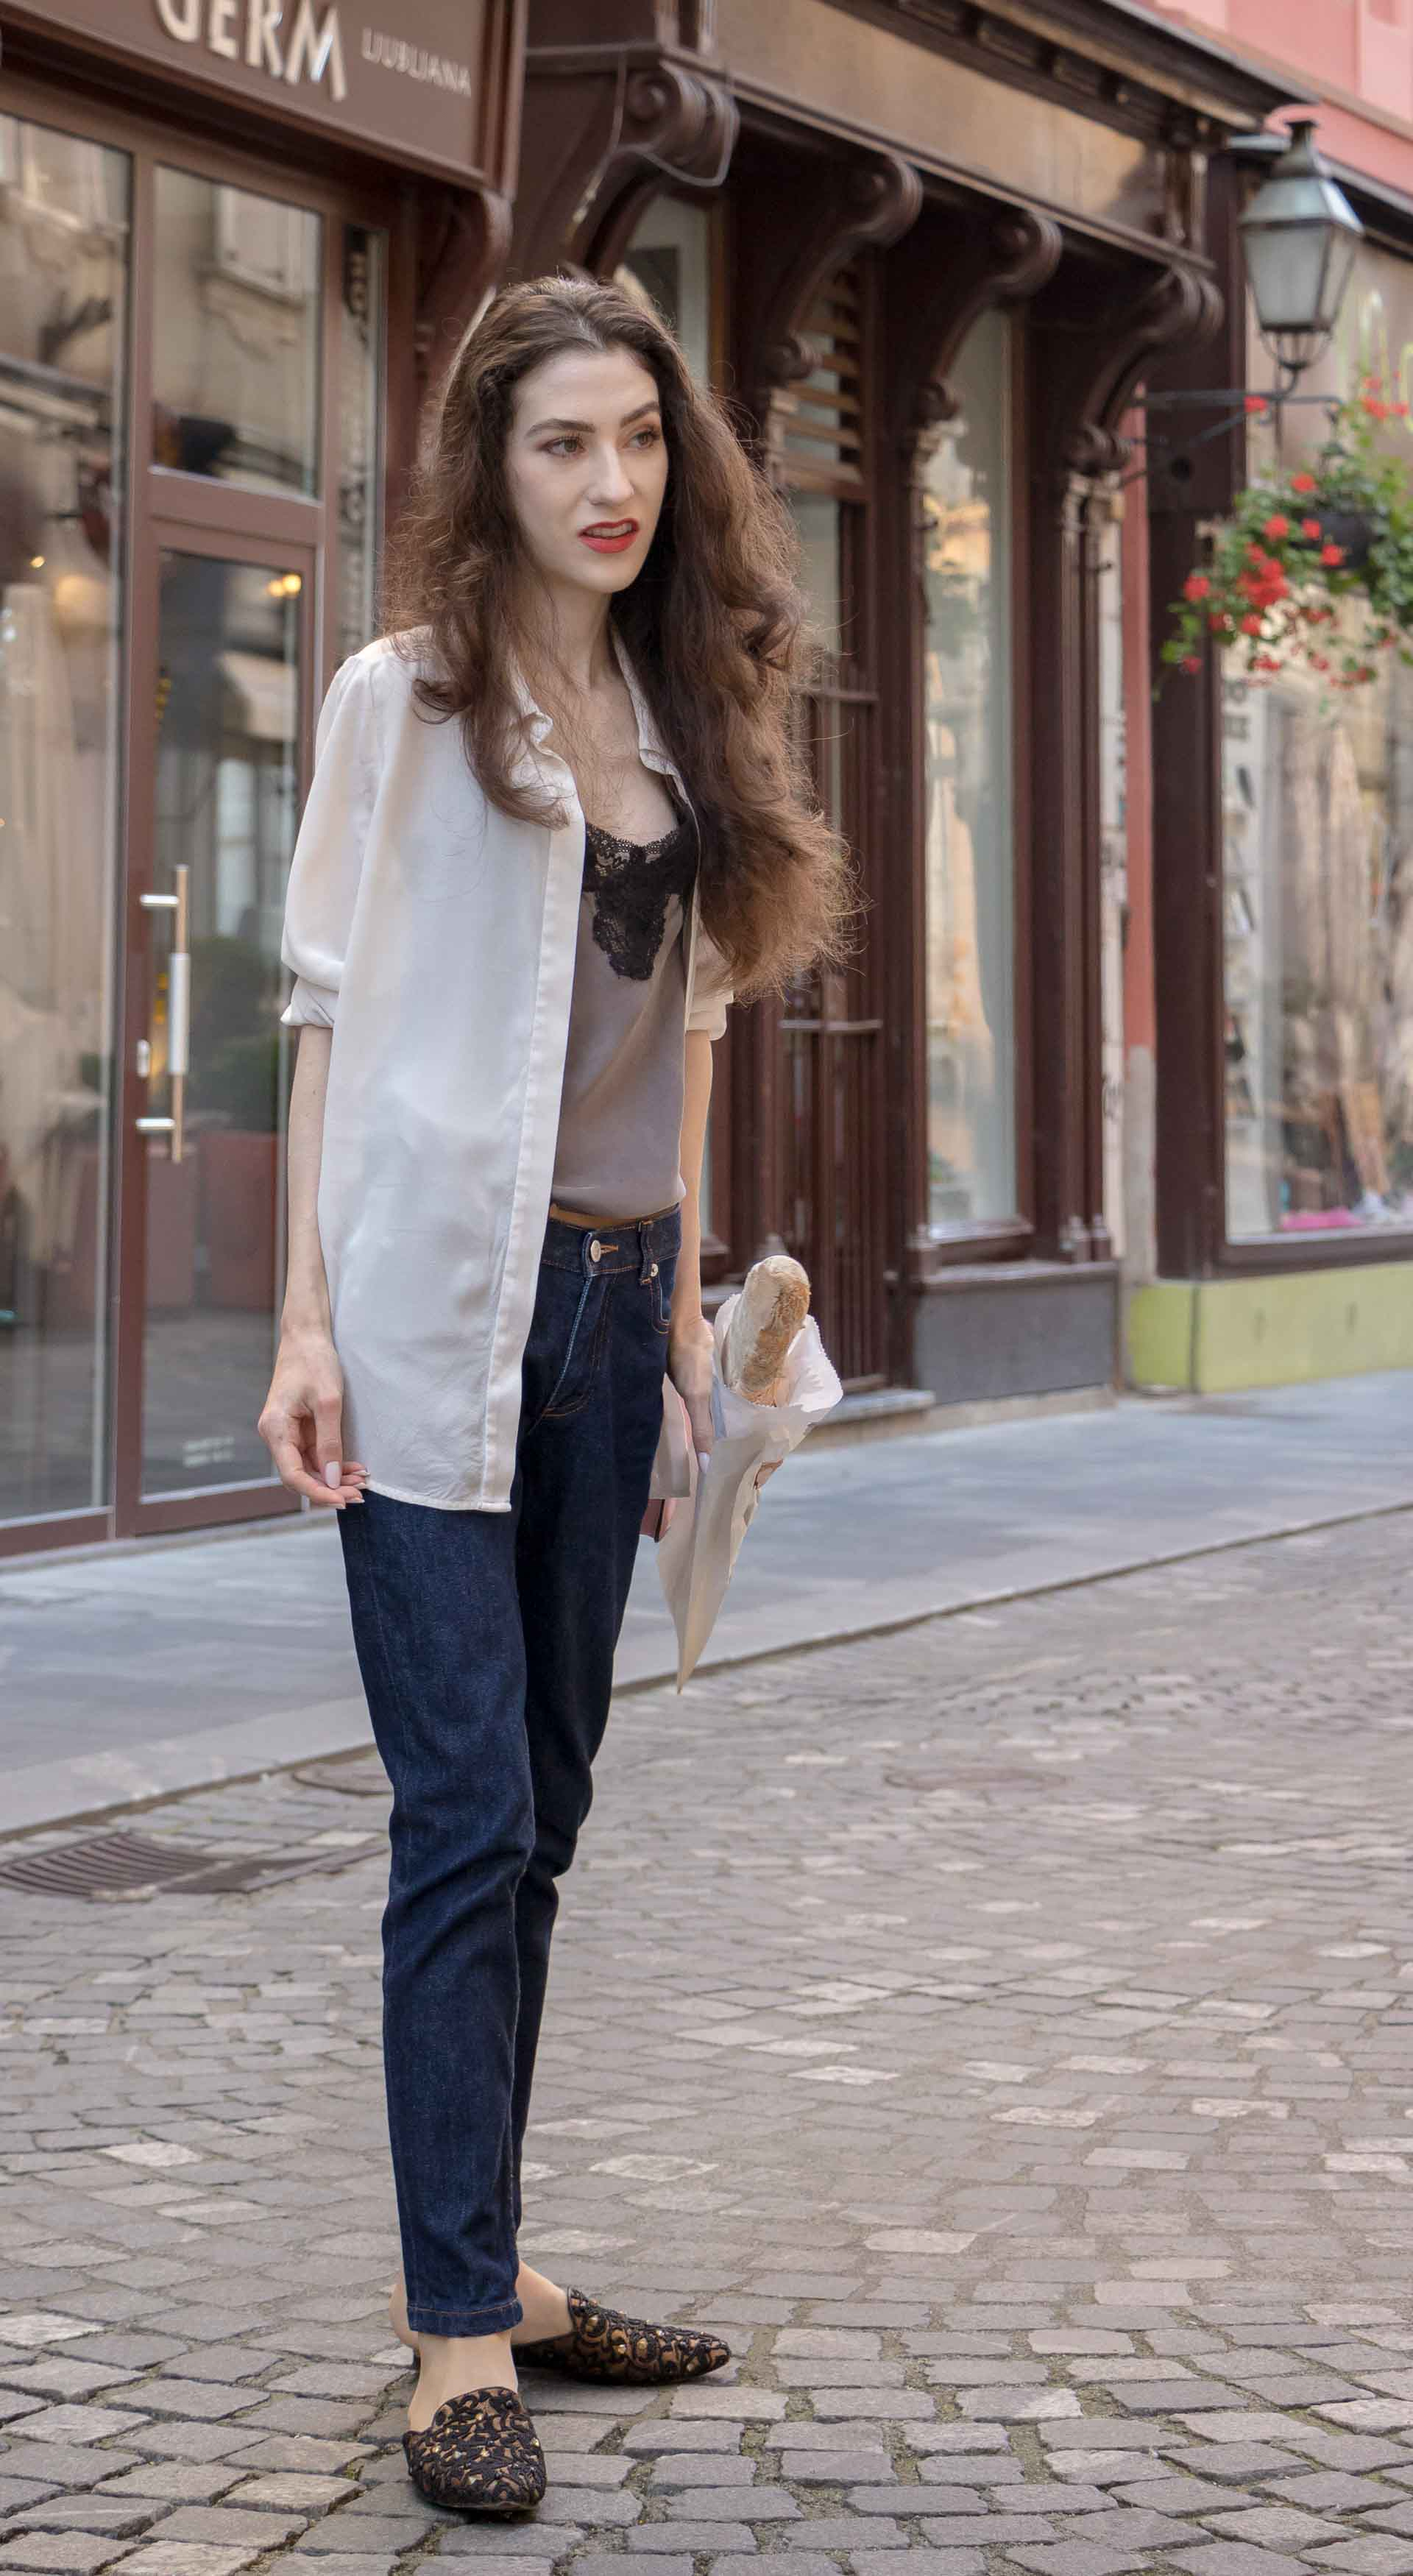 Fashion Blogger Veronika Lipar of Brunette from Wall Street dressed in white transparent shirt with transparent back from Sandro Paris, grey silk slip top, A.P.C. dark denim jeans, mules, pink Furla shoulder bag, while holding a baguette on the street